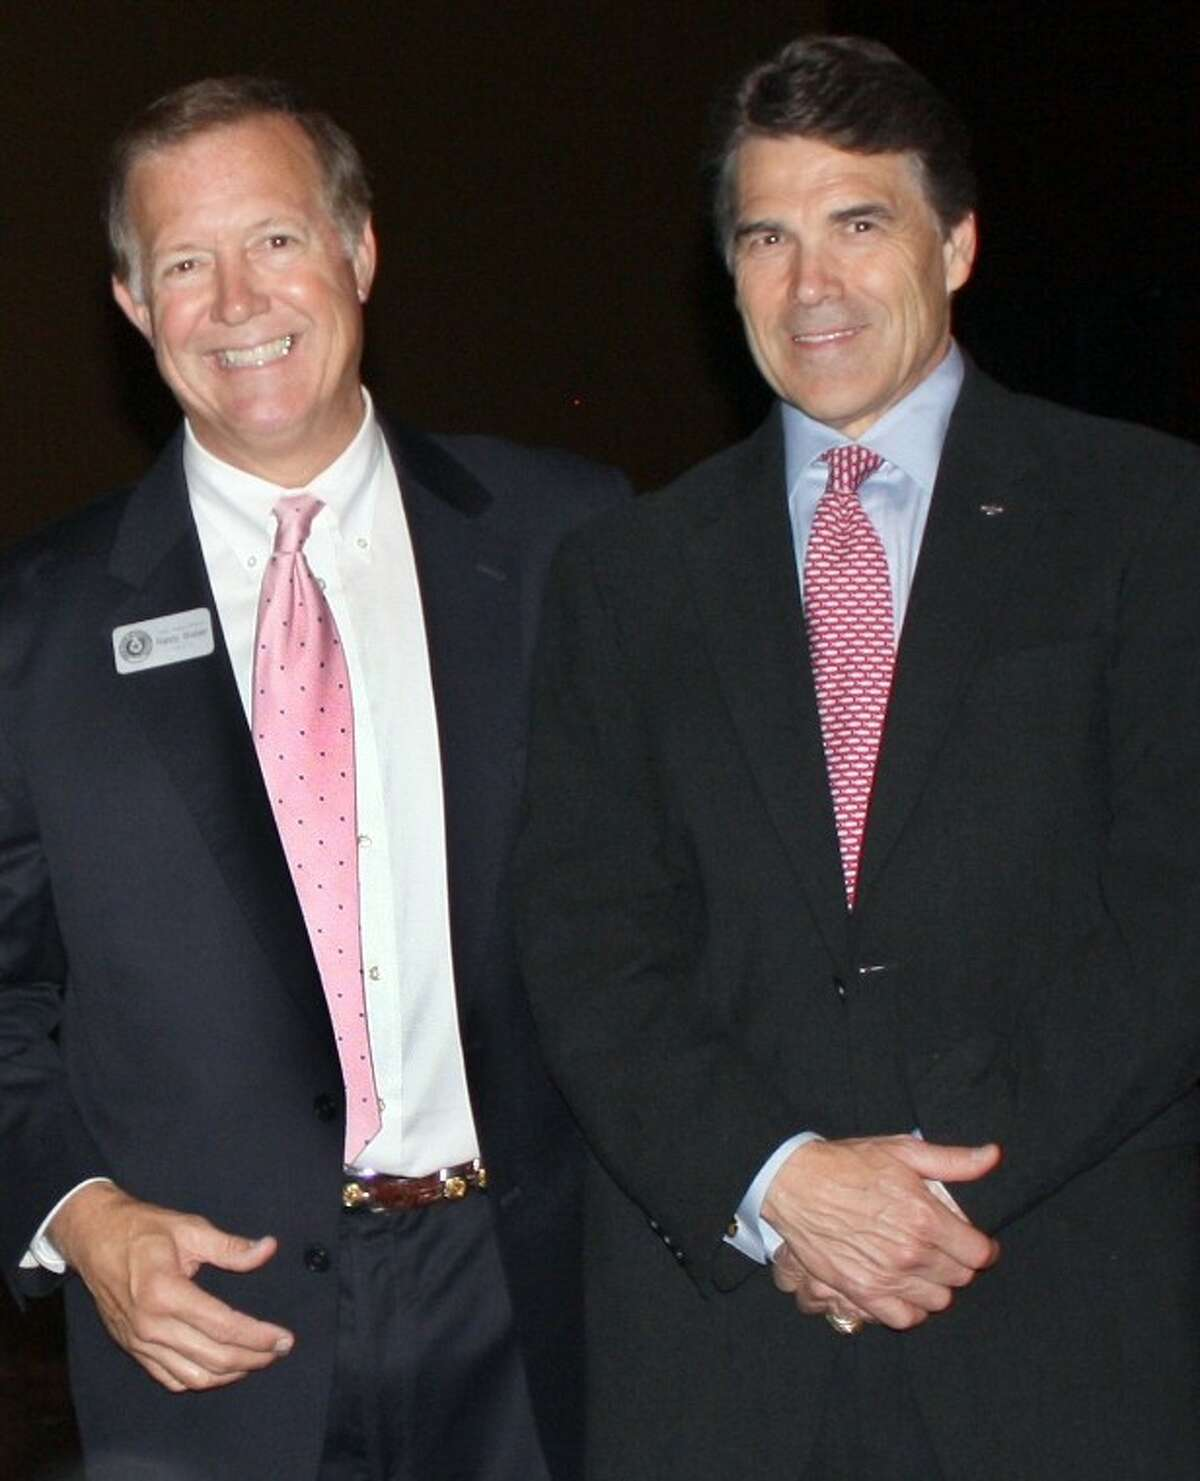 State Rep. Randy Weber (left), candidate for U.S. Representative District 14 was recently endorsed by Texas Governor Rick Perry (right).